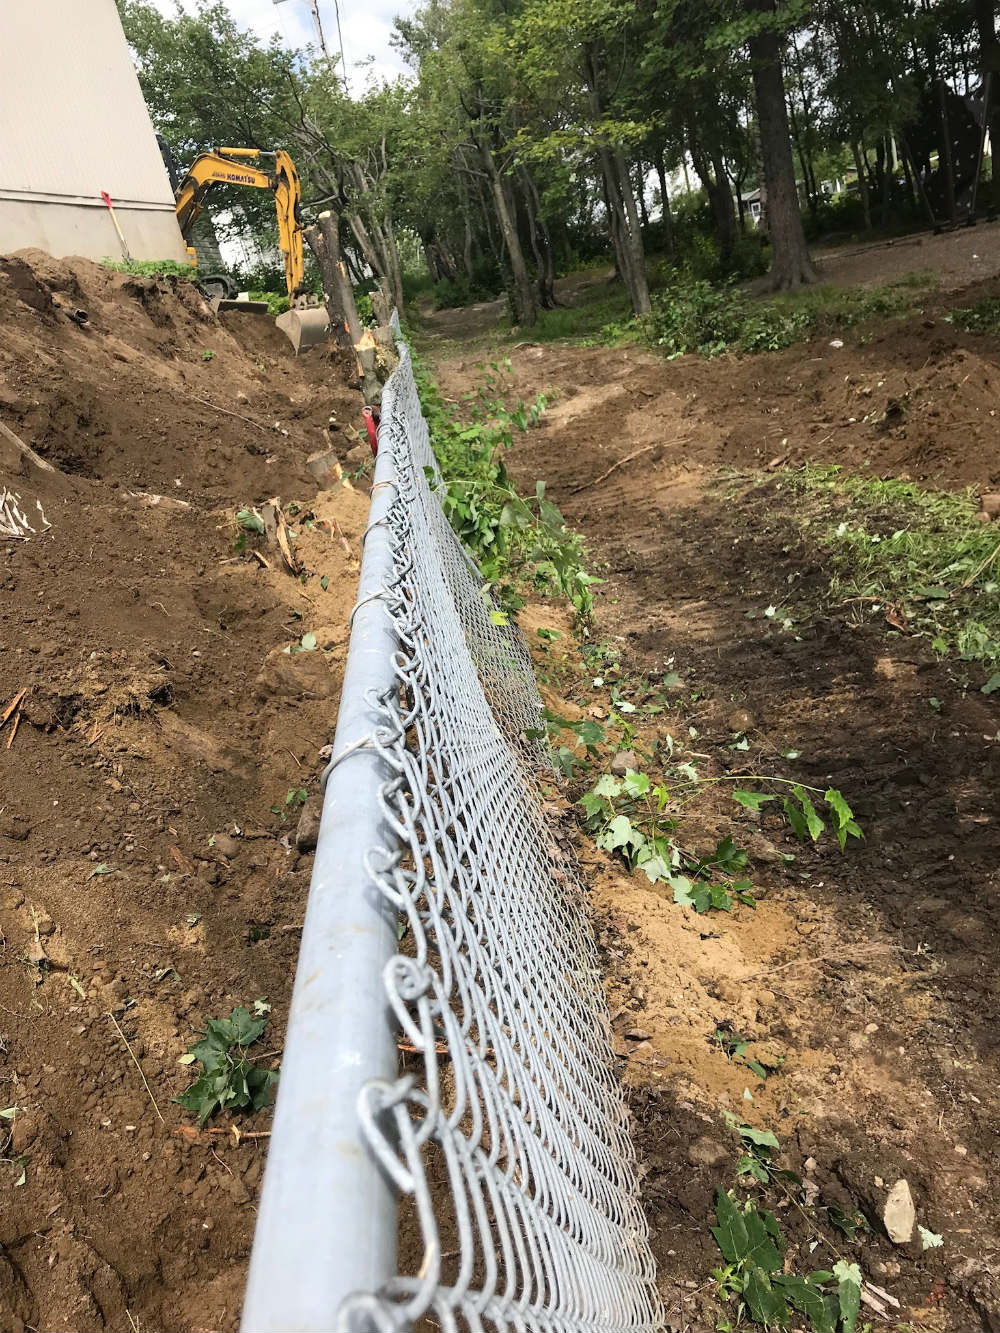 fencing work using excavation